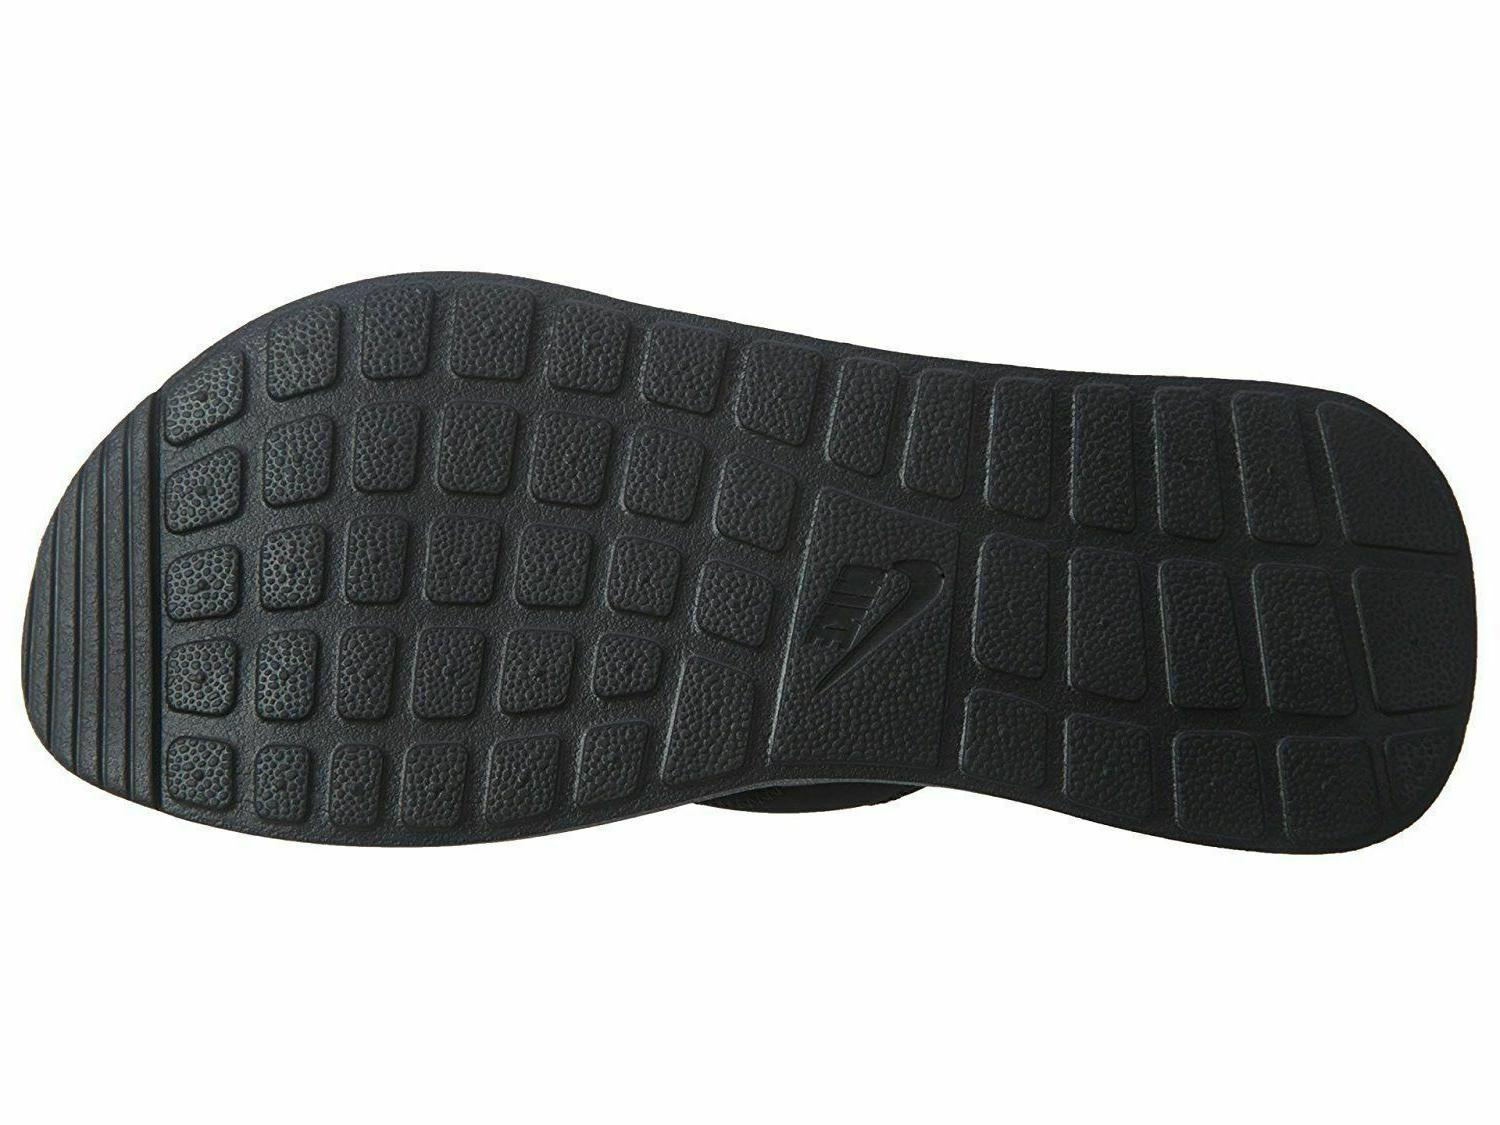 NWT Celso Thong Sandals Flops Black